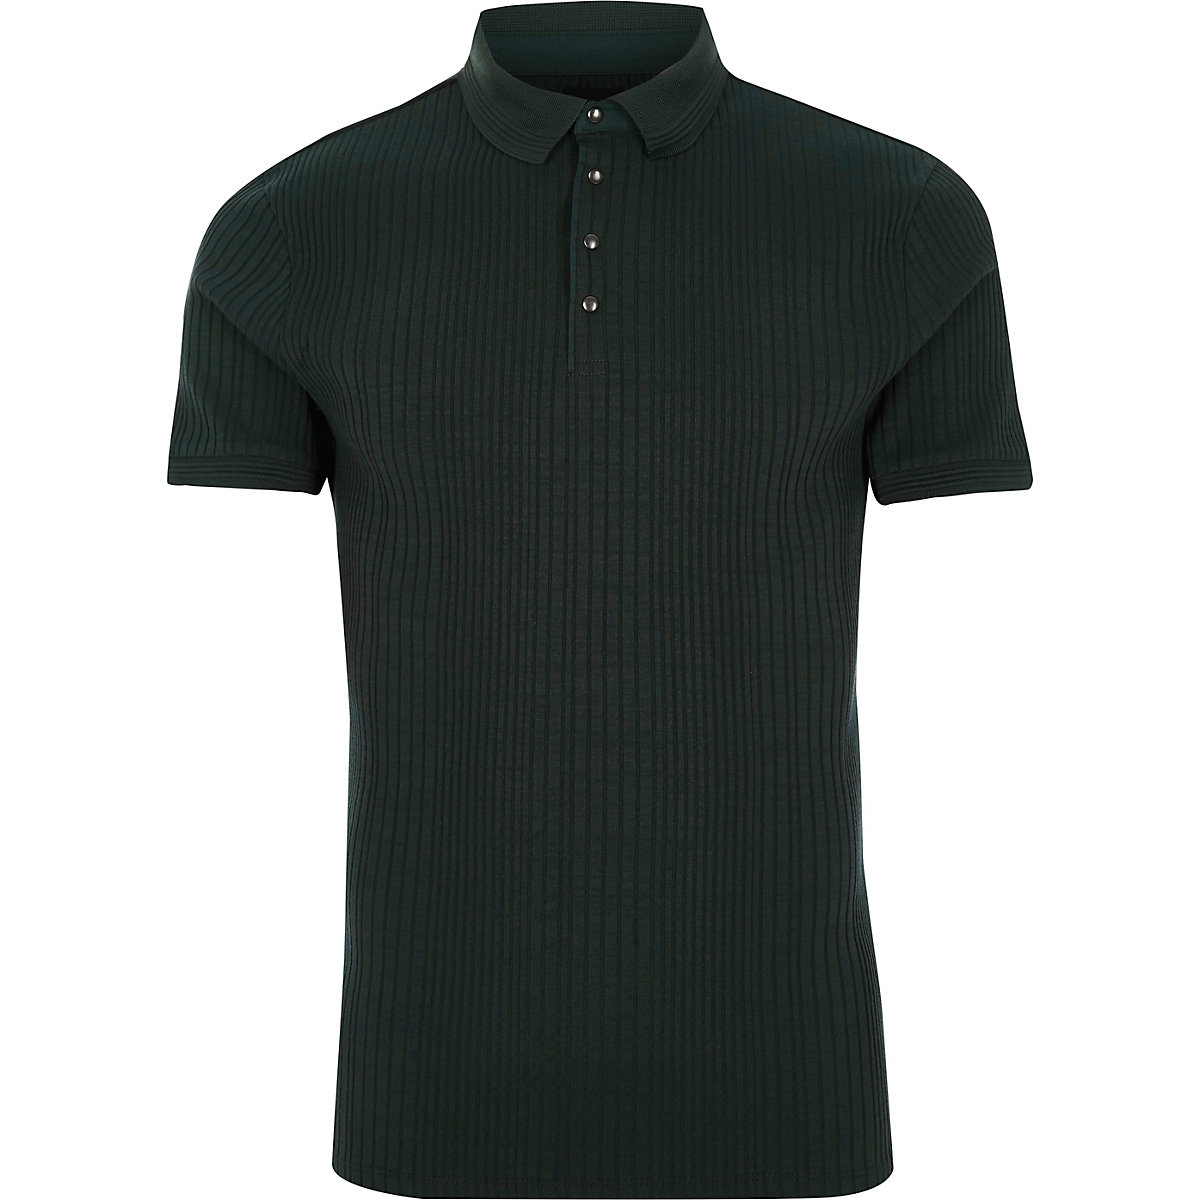 Dark green ribbed muscle fit polo shirt